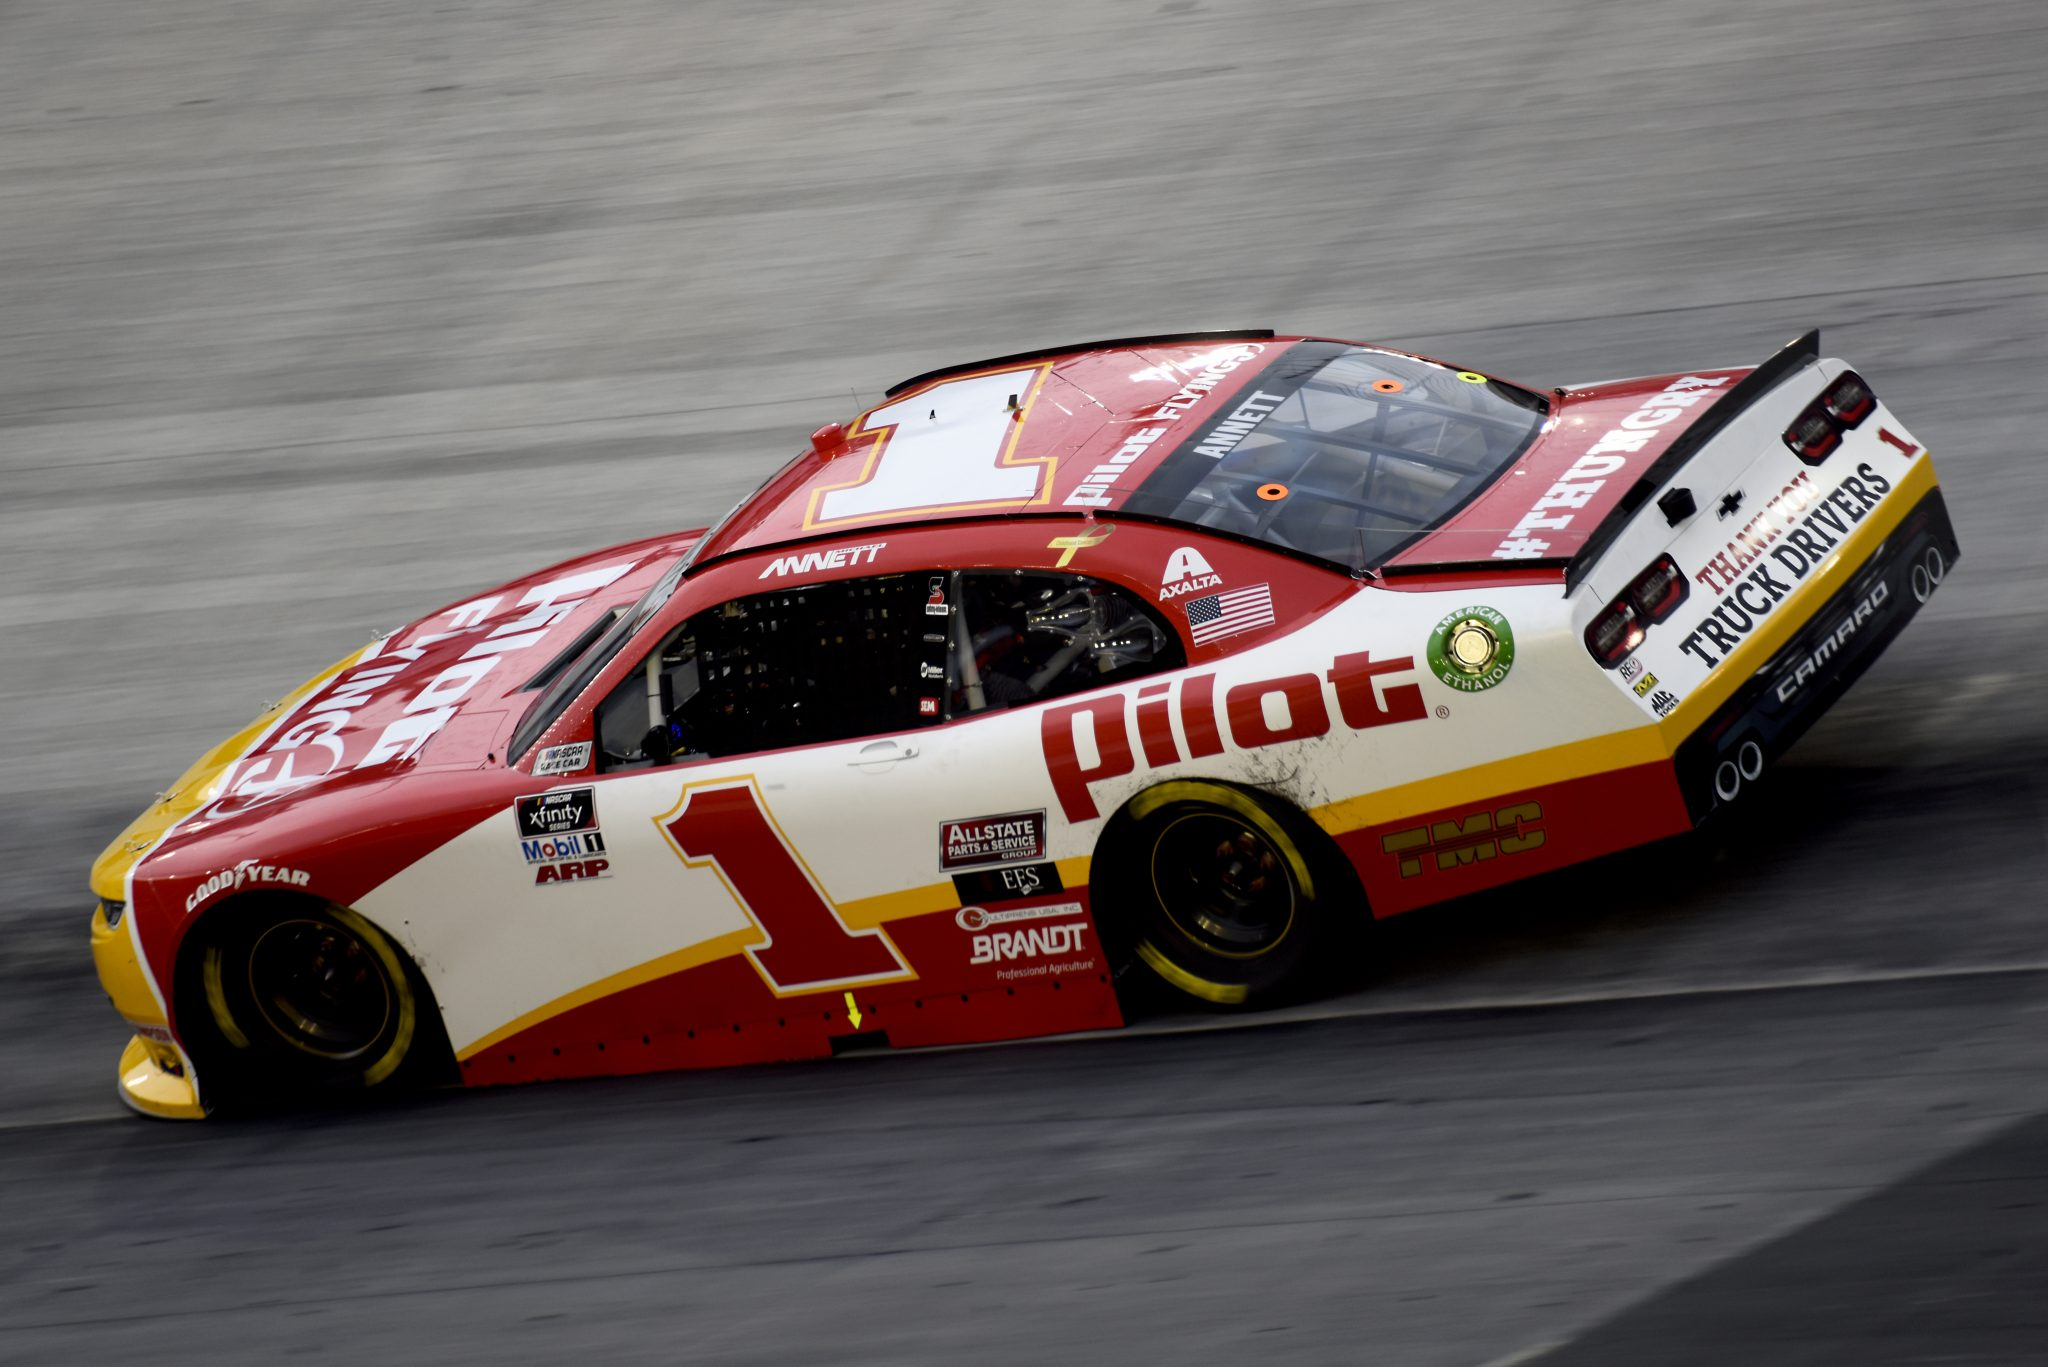 BRISTOL, TENNESSEE - SEPTEMBER 18: Michael Annett, driver of the #1 Pilot Flying J Chevrolet, drives during the NASCAR Xfinity Series Food City 300 at Bristol Motor Speedway on September 18, 2020 in Bristol, Tennessee. (Photo by Jared C. Tilton/Getty Images) | Getty Images